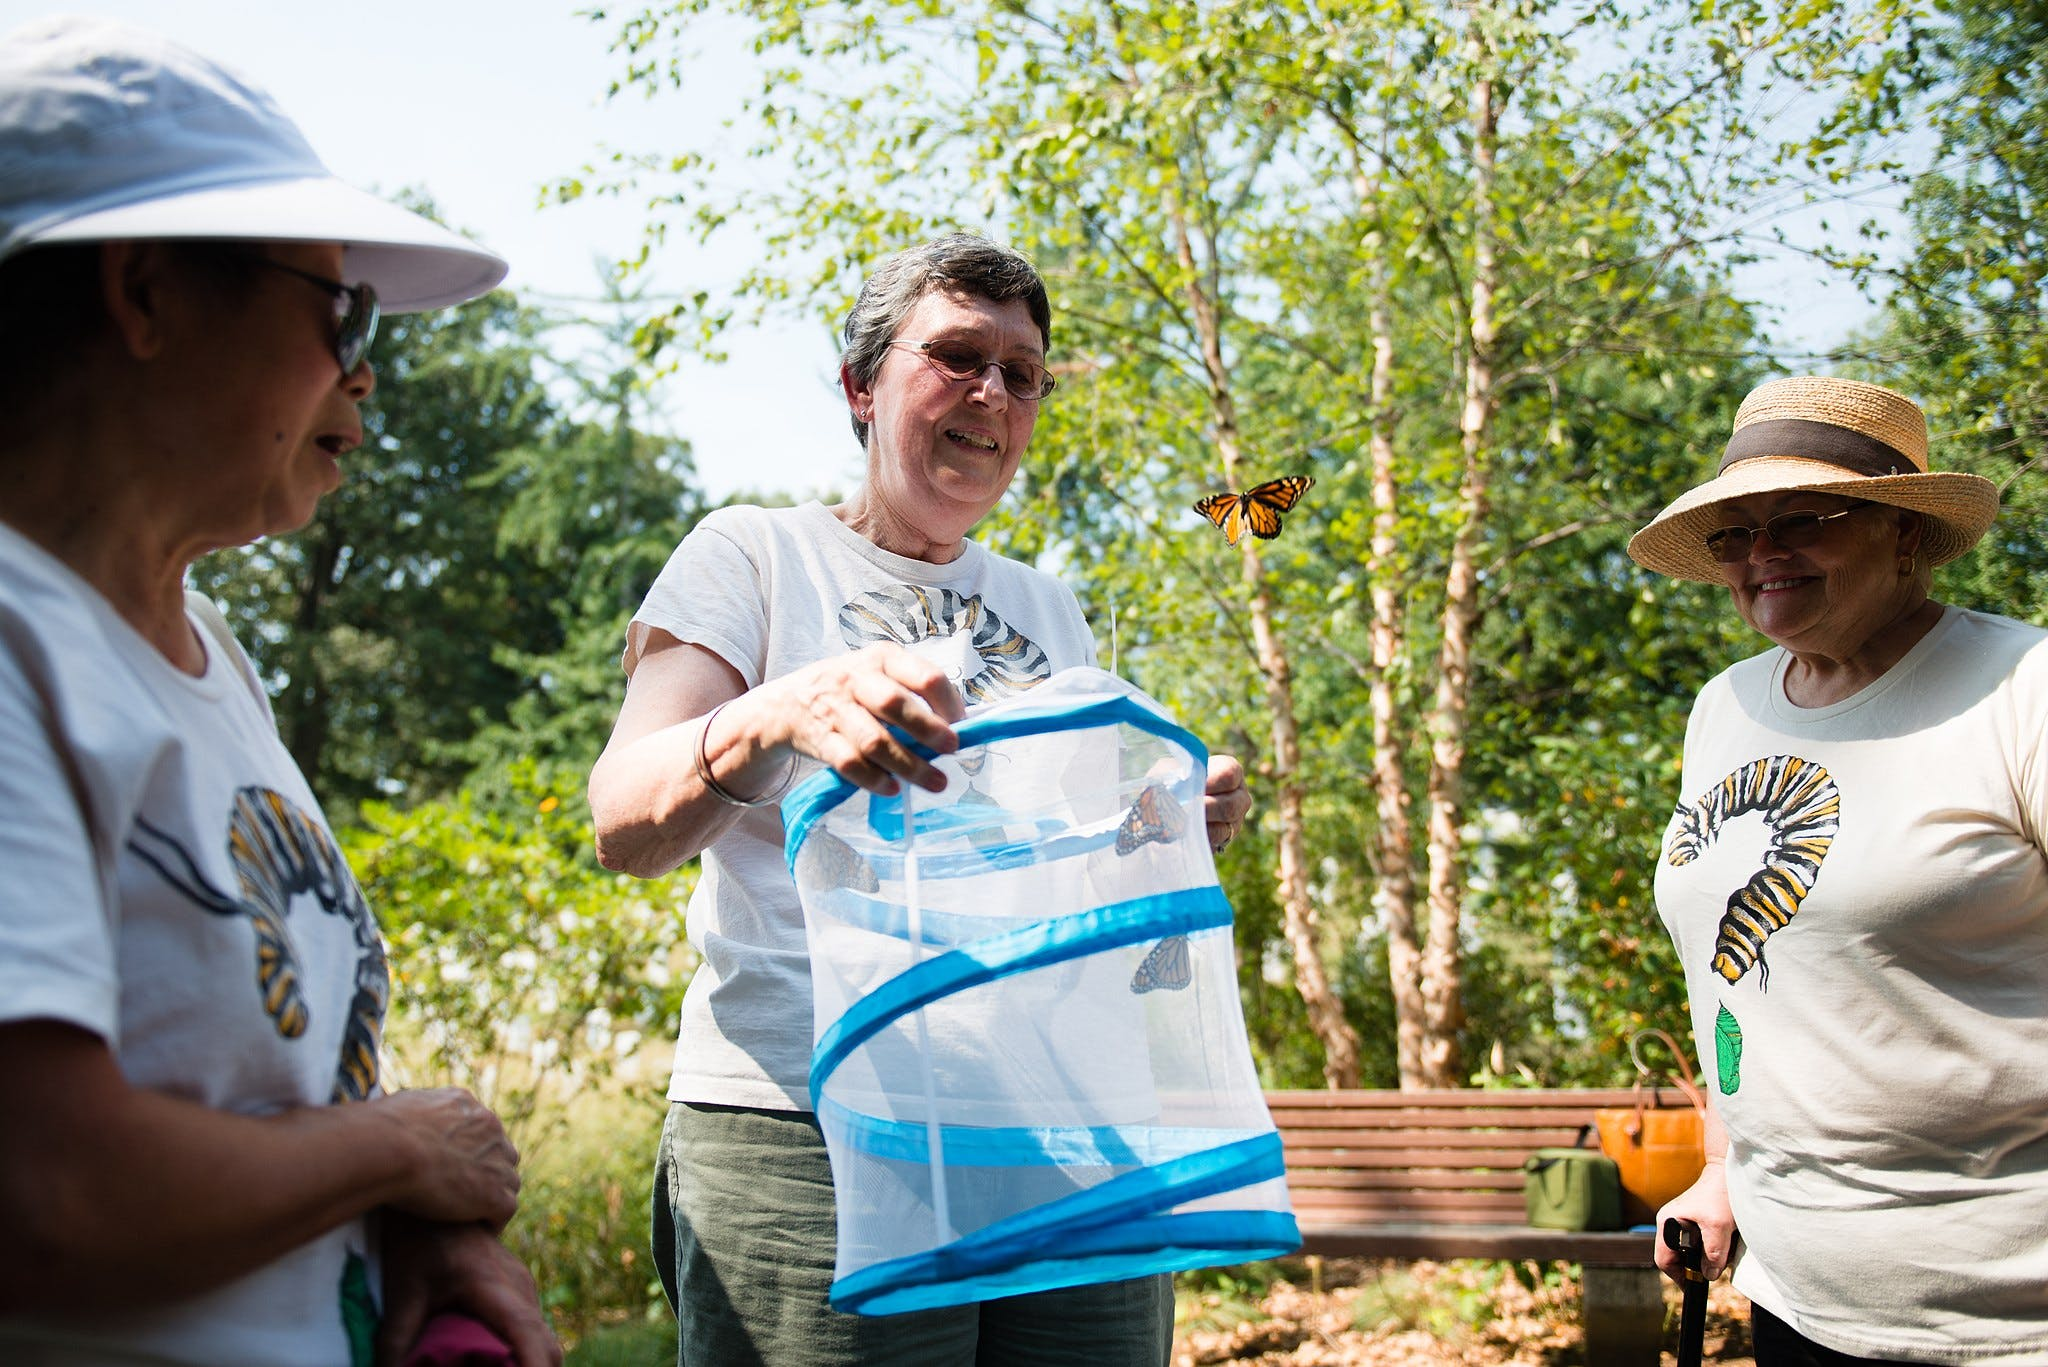 A monarch butterfly released in Arlington National Cemetery by volunteers with Monarch Teacher Network, Sept. 1, 2015, in Arlington, VA